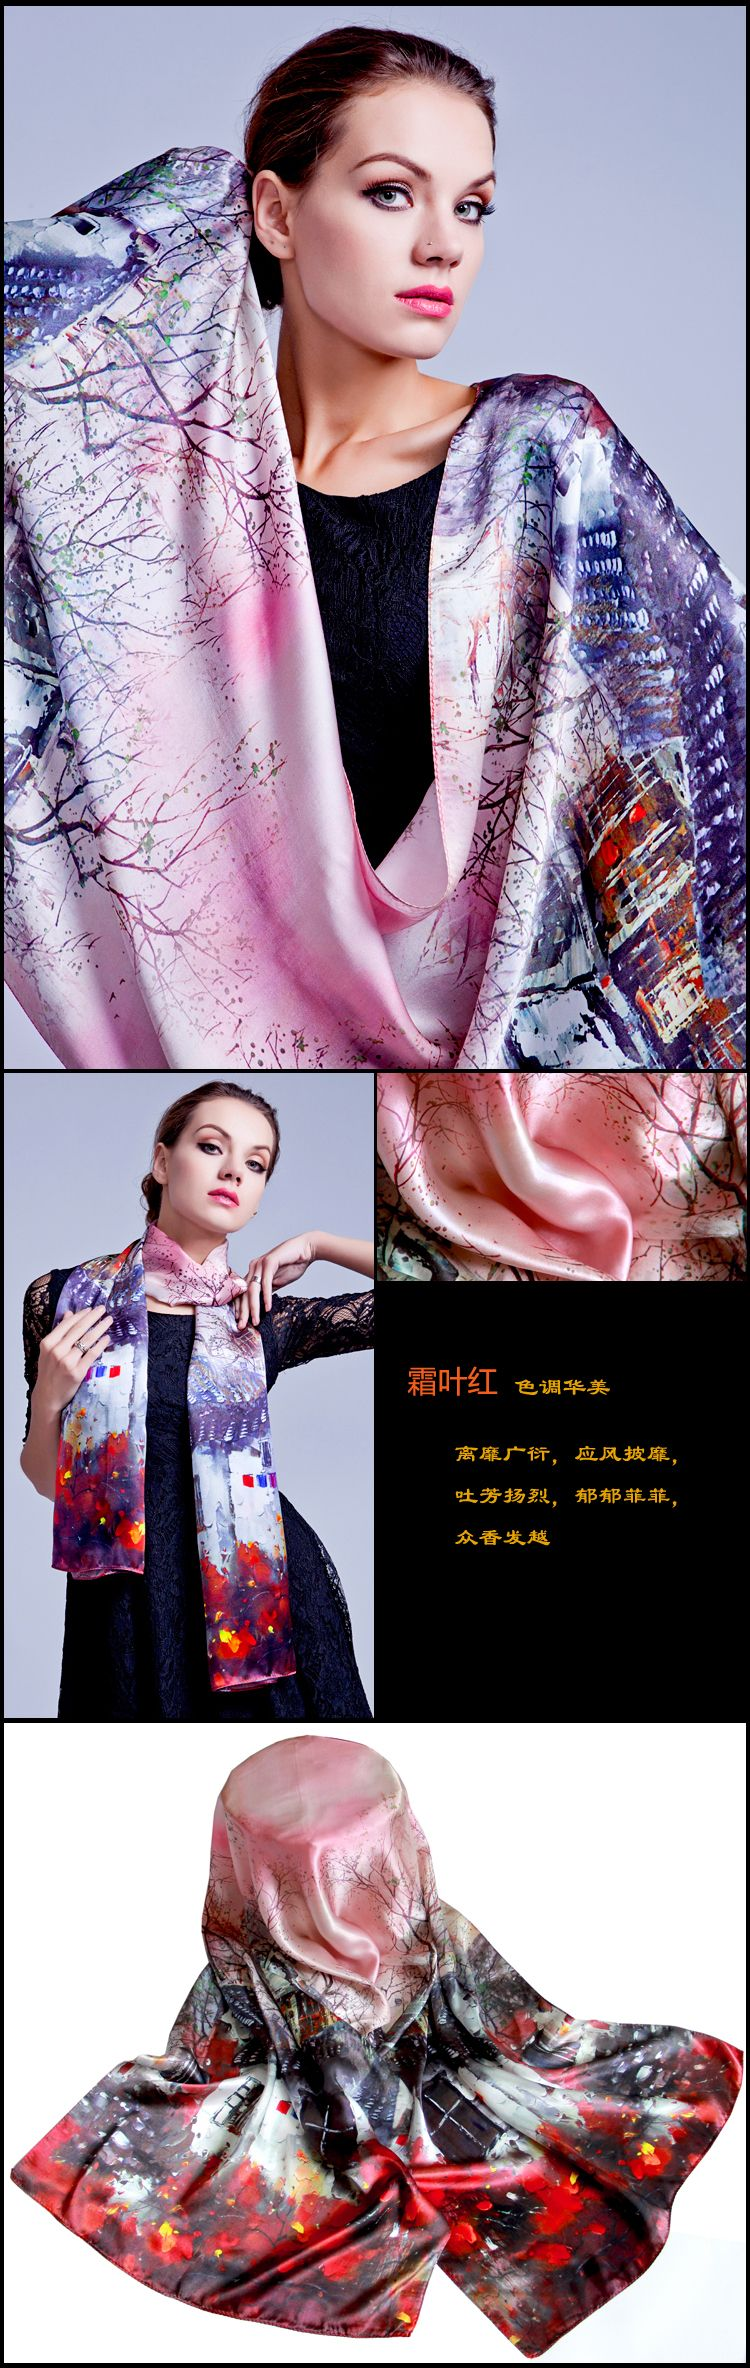 US $19.99 58% OFF New high quality 100% real silk satin long scarf wrap shawl hijab for women ladies luxury foulard scarves 175x52CM-in Women's Scarves from Apparel Accessories on AliExpress #scarvesamp;shawls